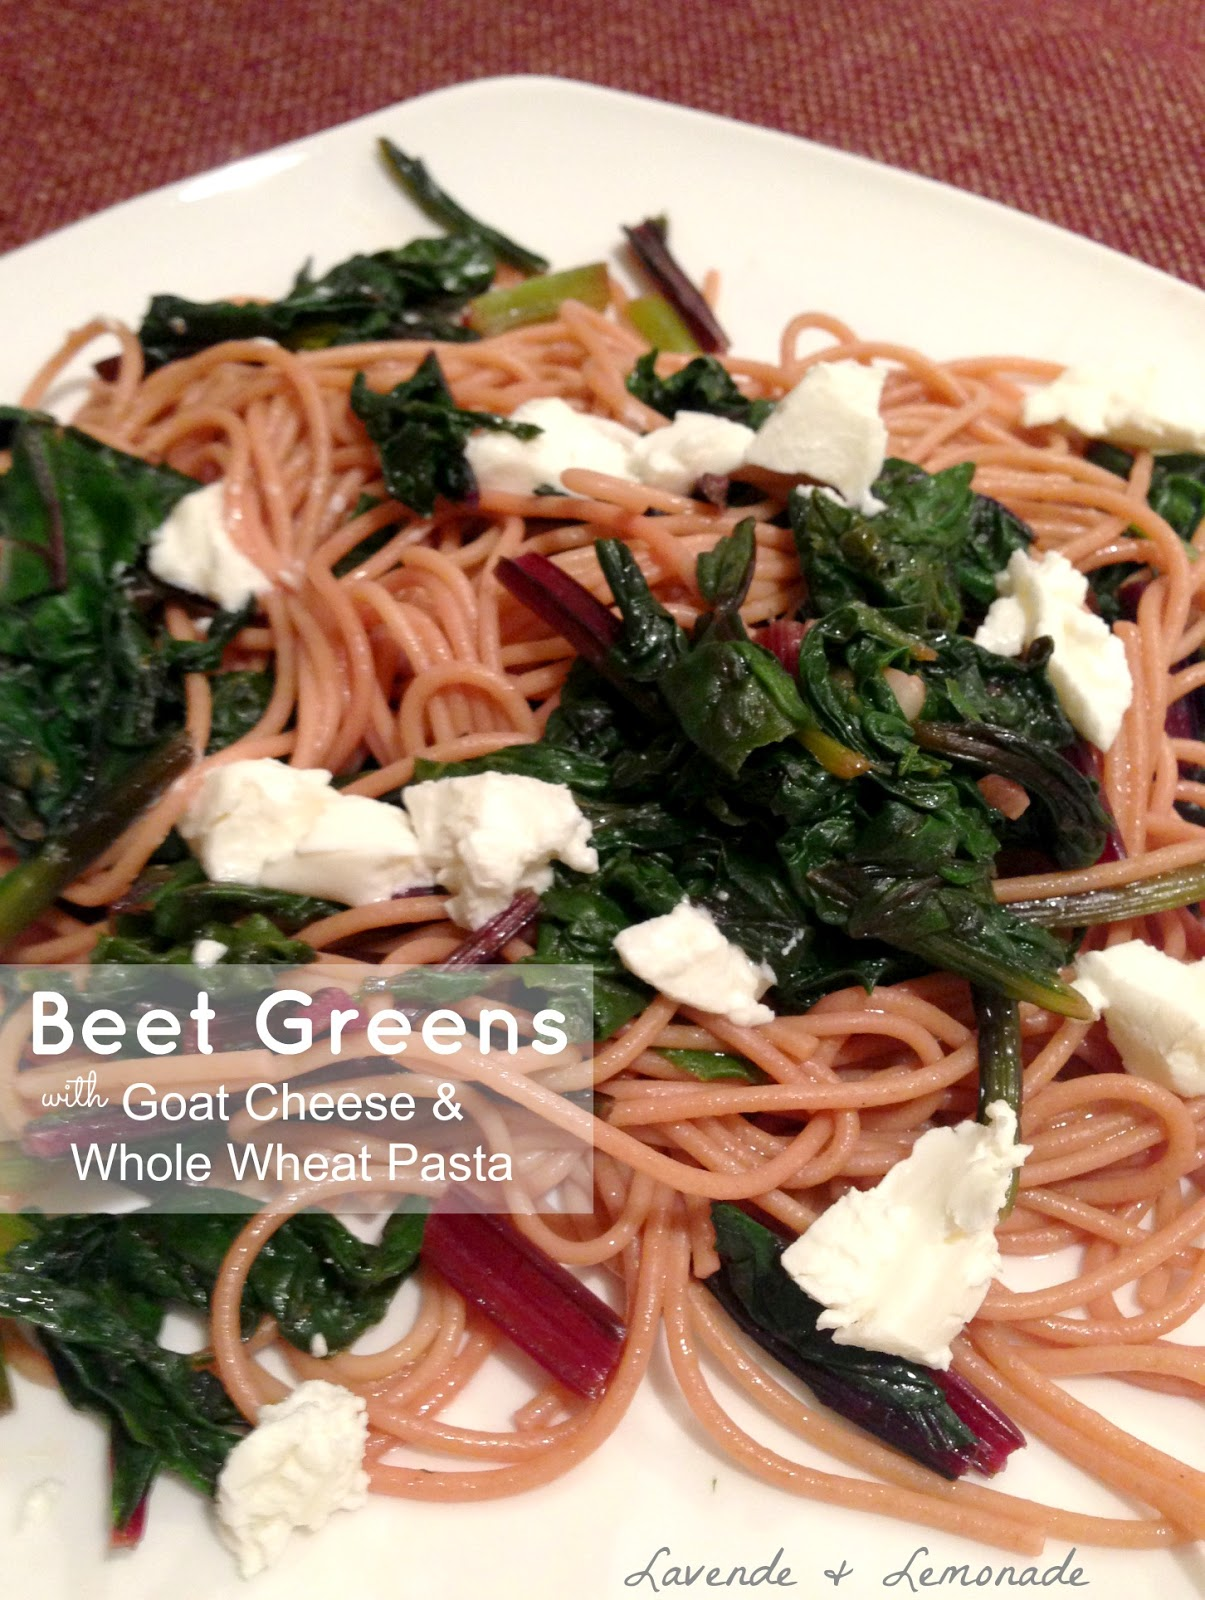 Beet greens with goat cheese and whole wheat pasta